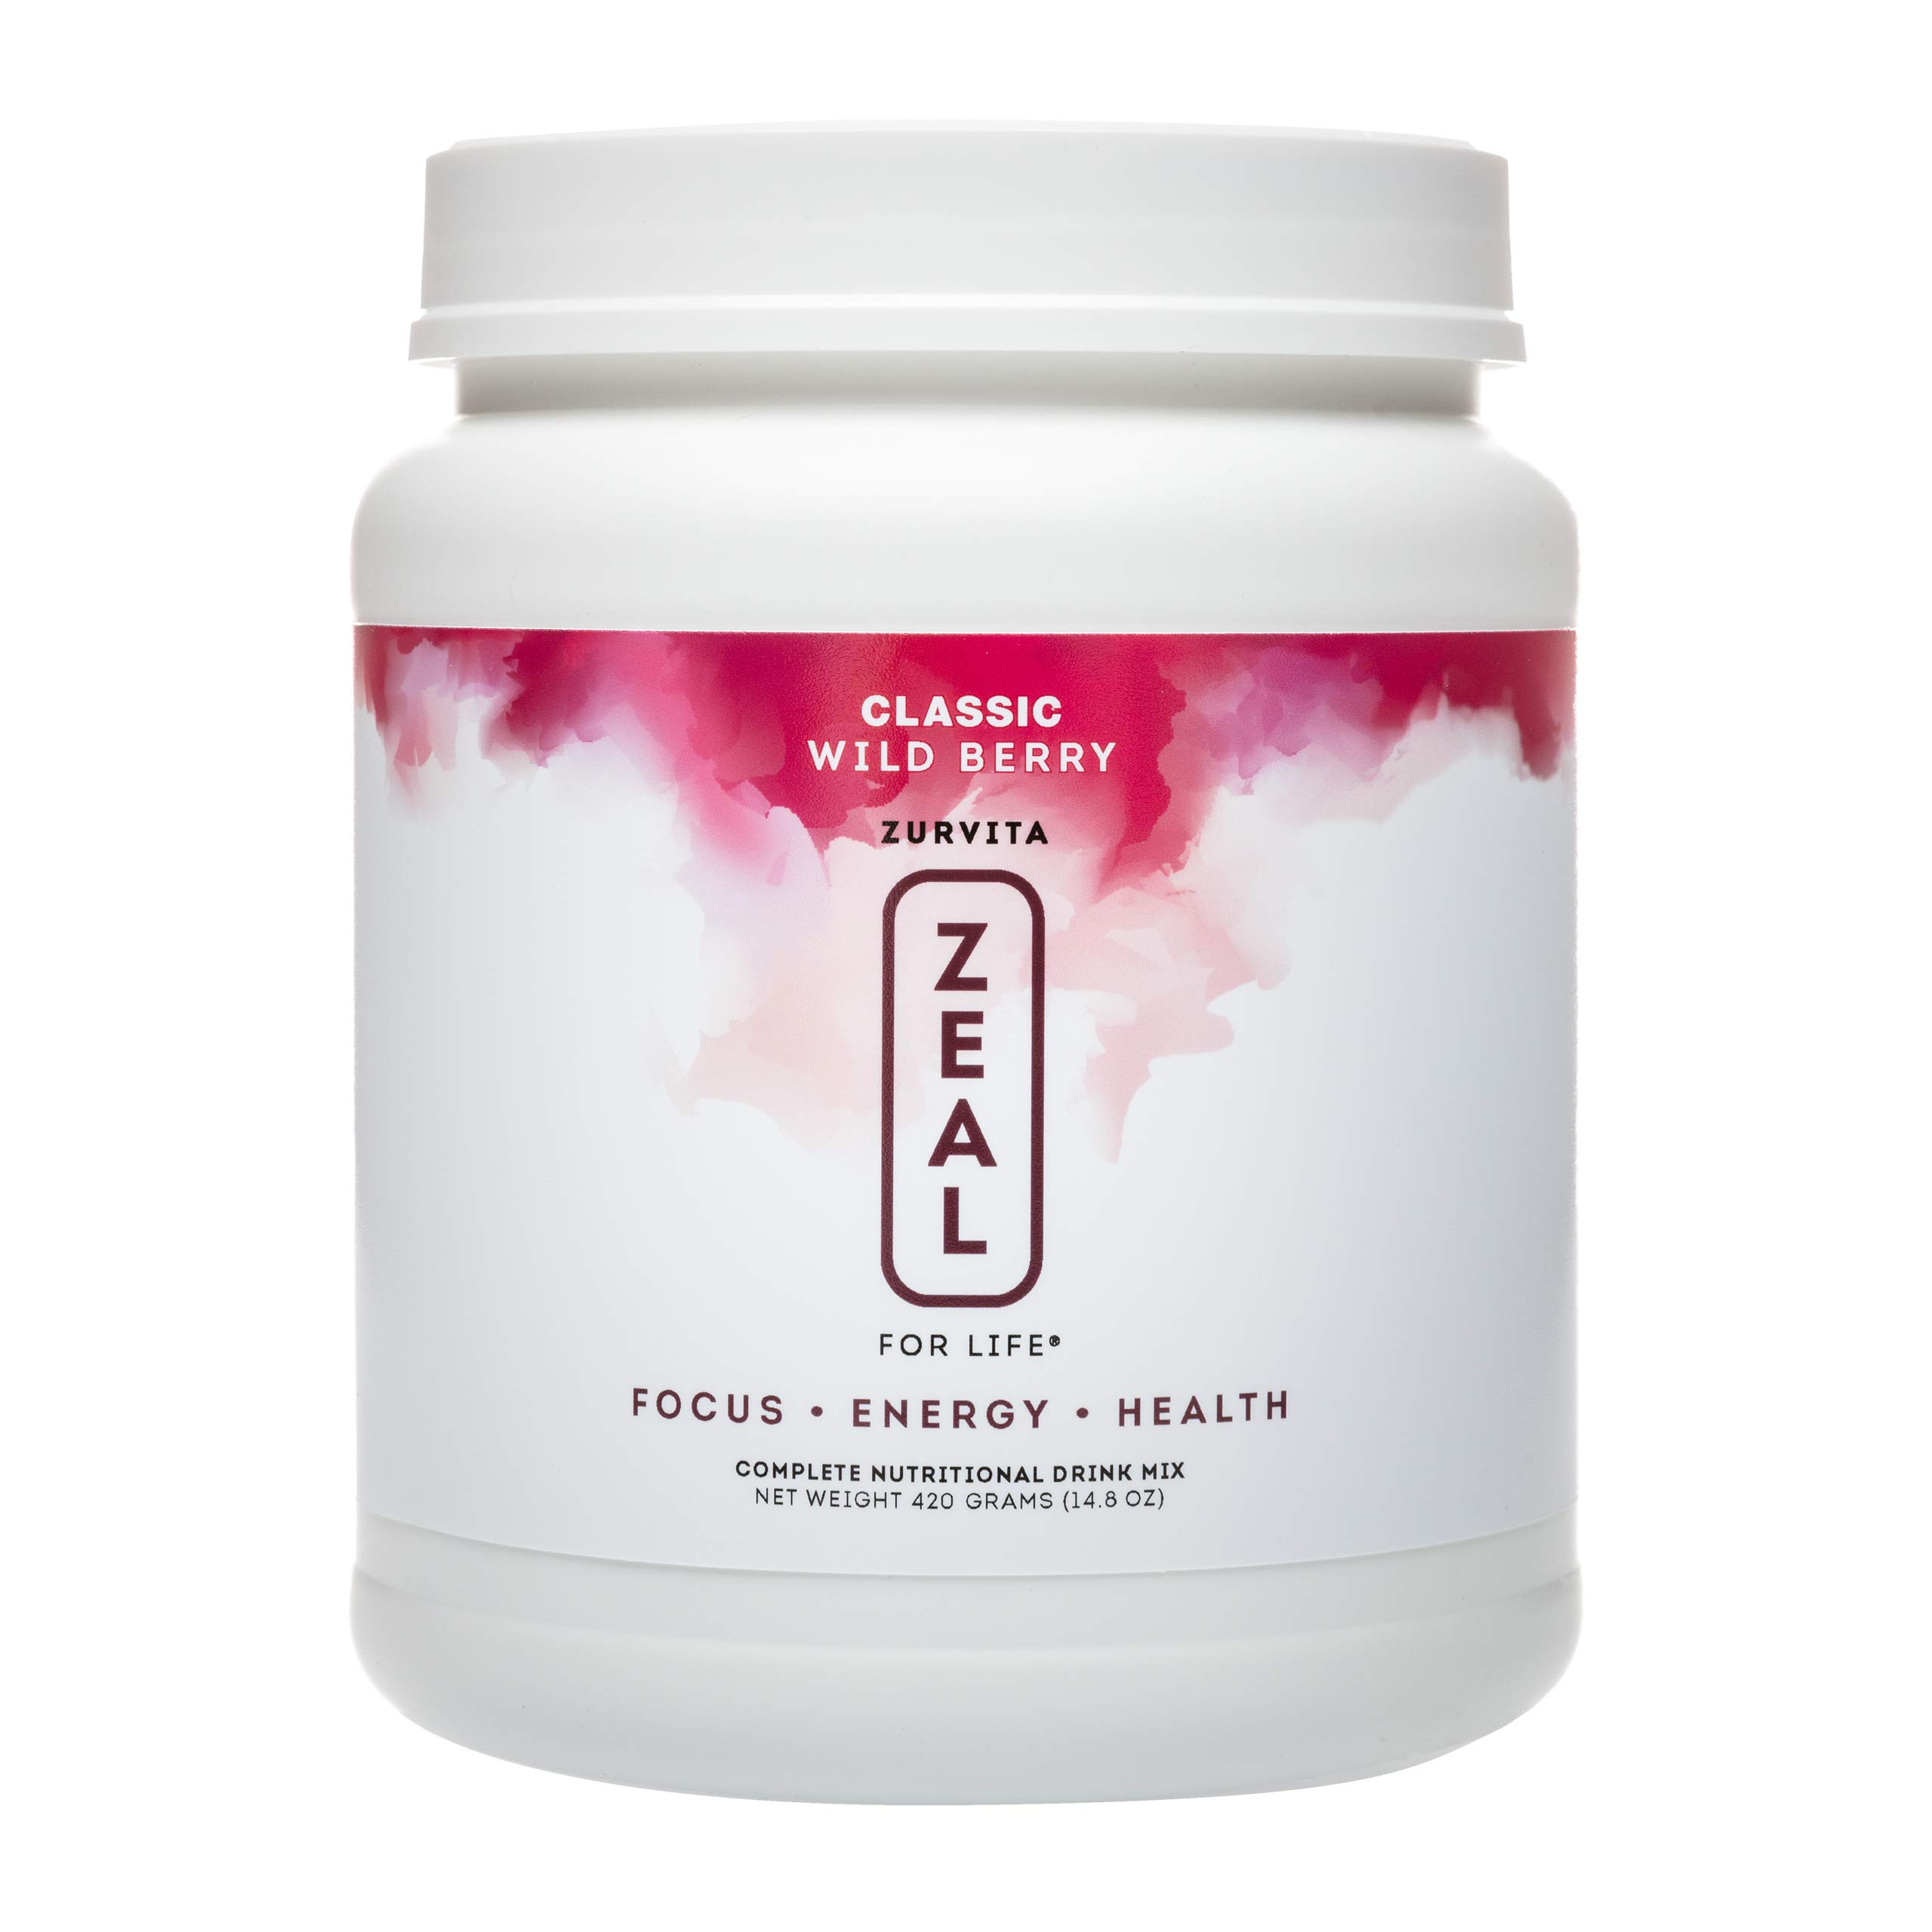 Zurvita Zeal for Life 30-Day Wellness Canister, 420 Grams, Wild Berry (Classic)